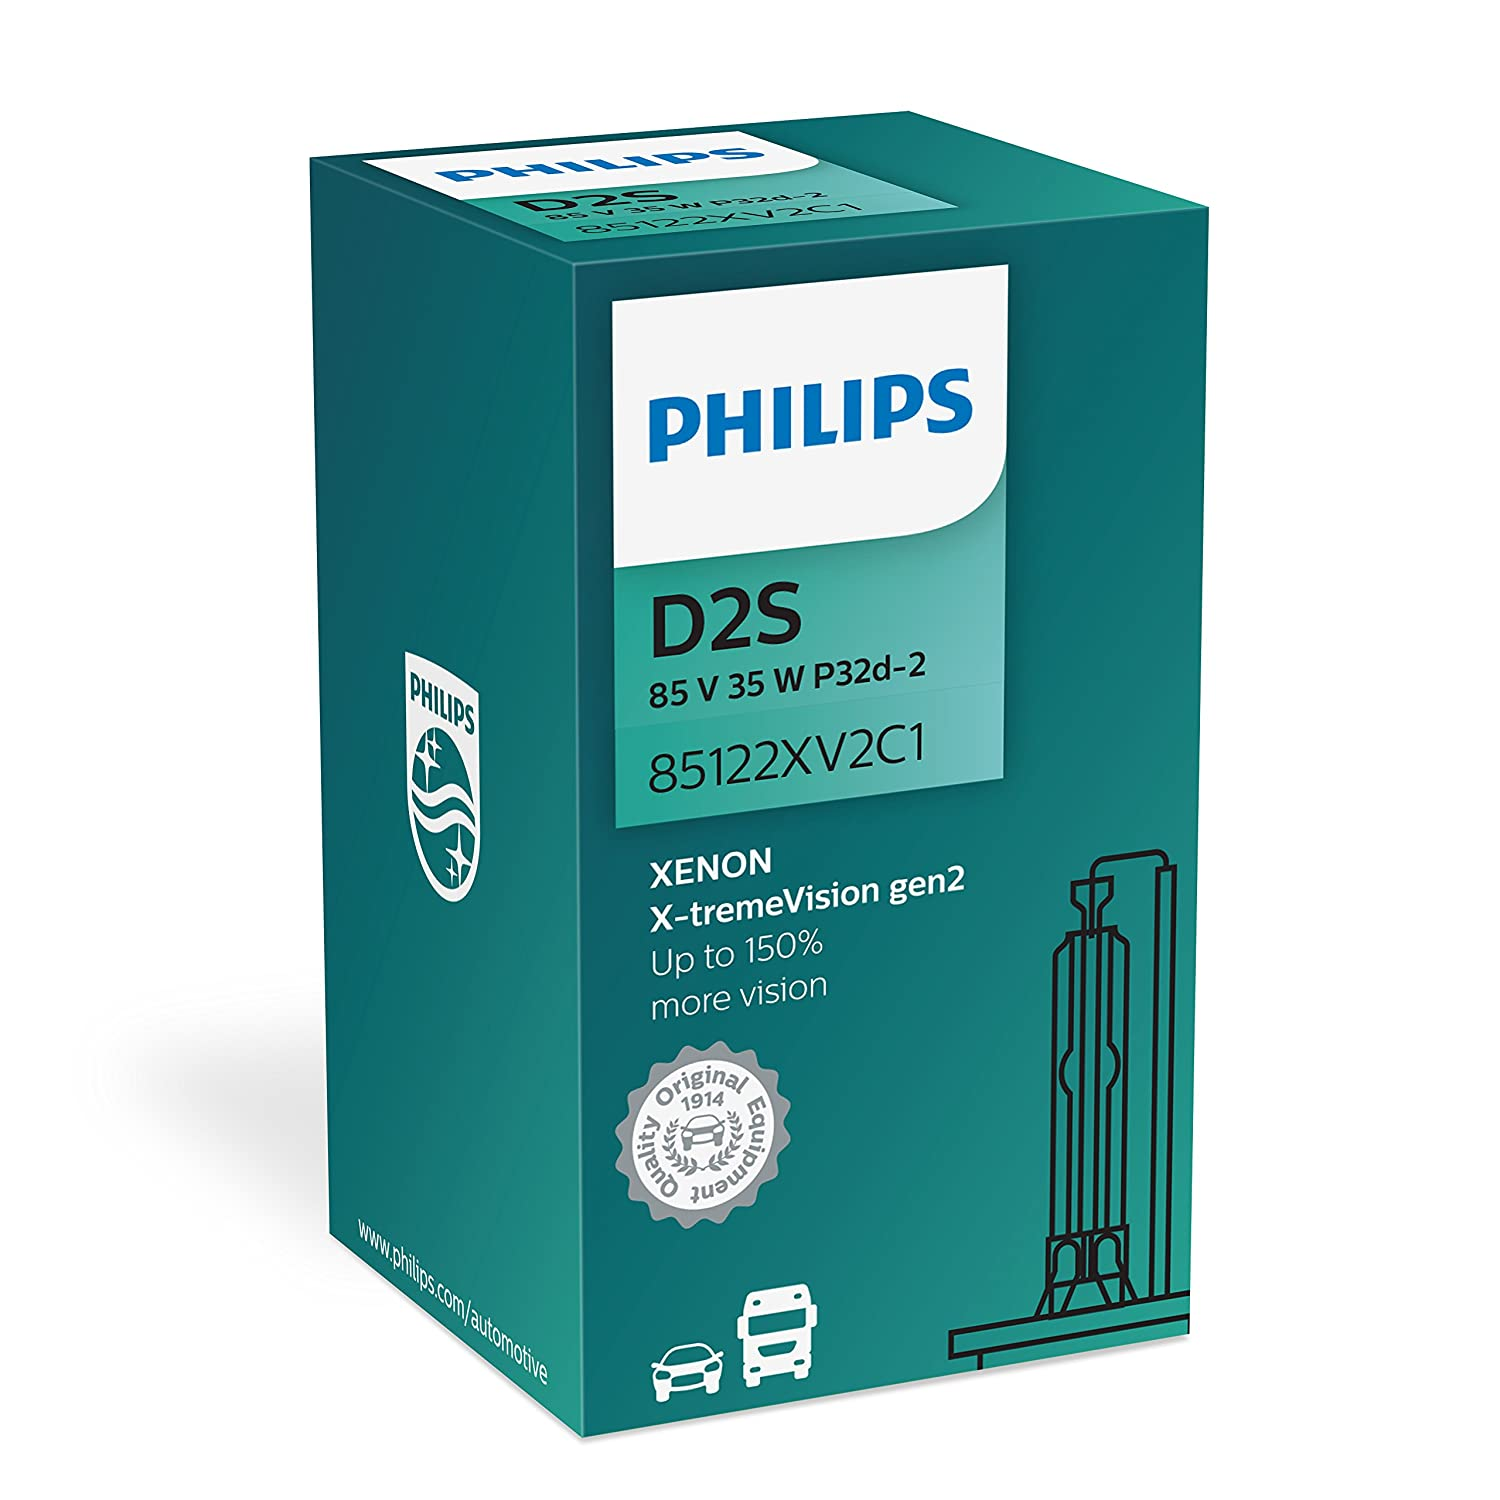 Philips MT-PH 85122XV2C1 Bombillas de Xen/ón